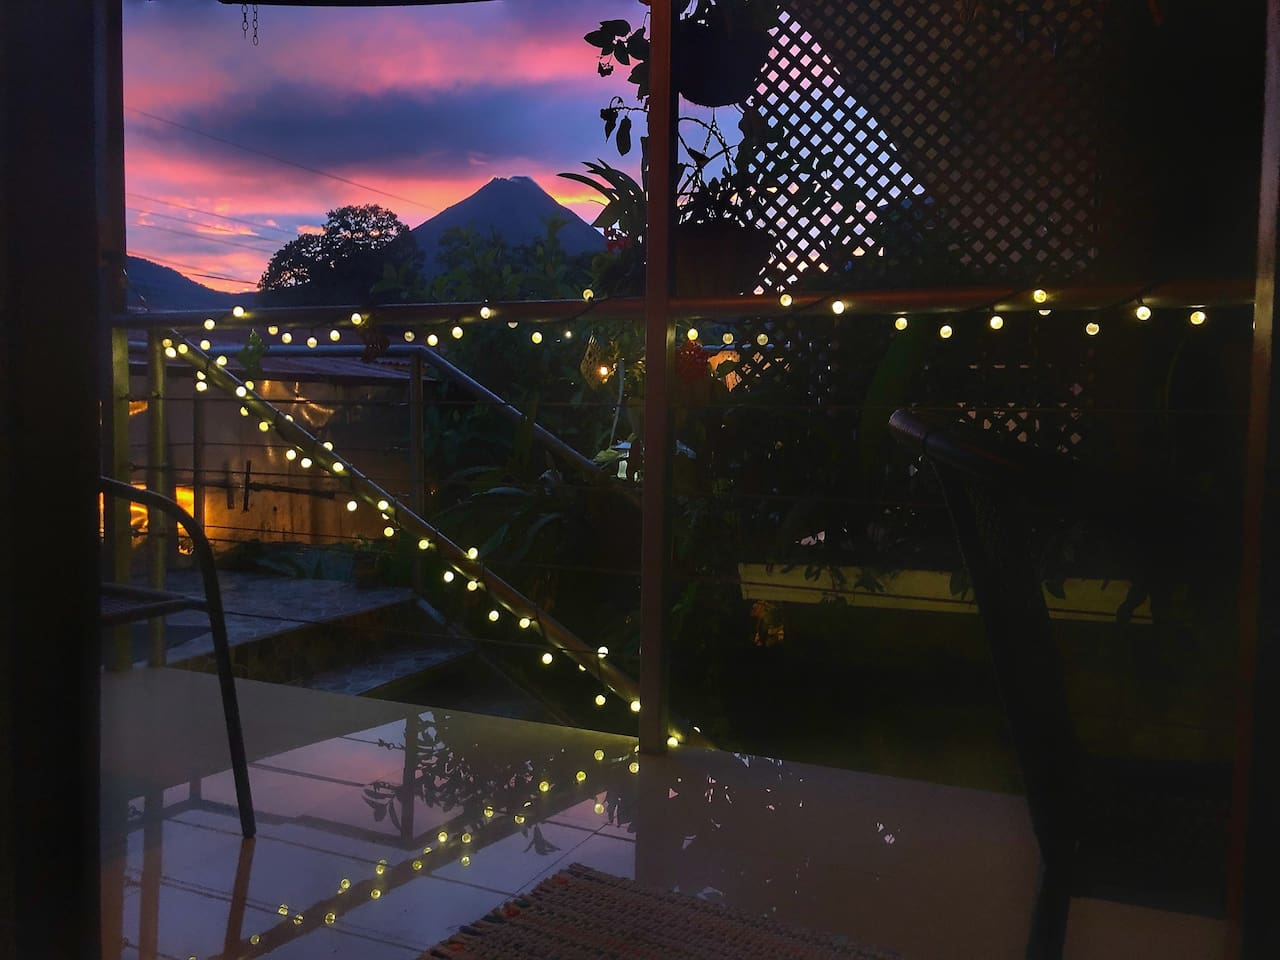 This beautiful sunset and volcano view is right from the porch of the apartment. Sunsets are not always as colorful as this one but it's possibility that you can see one, during your stay.